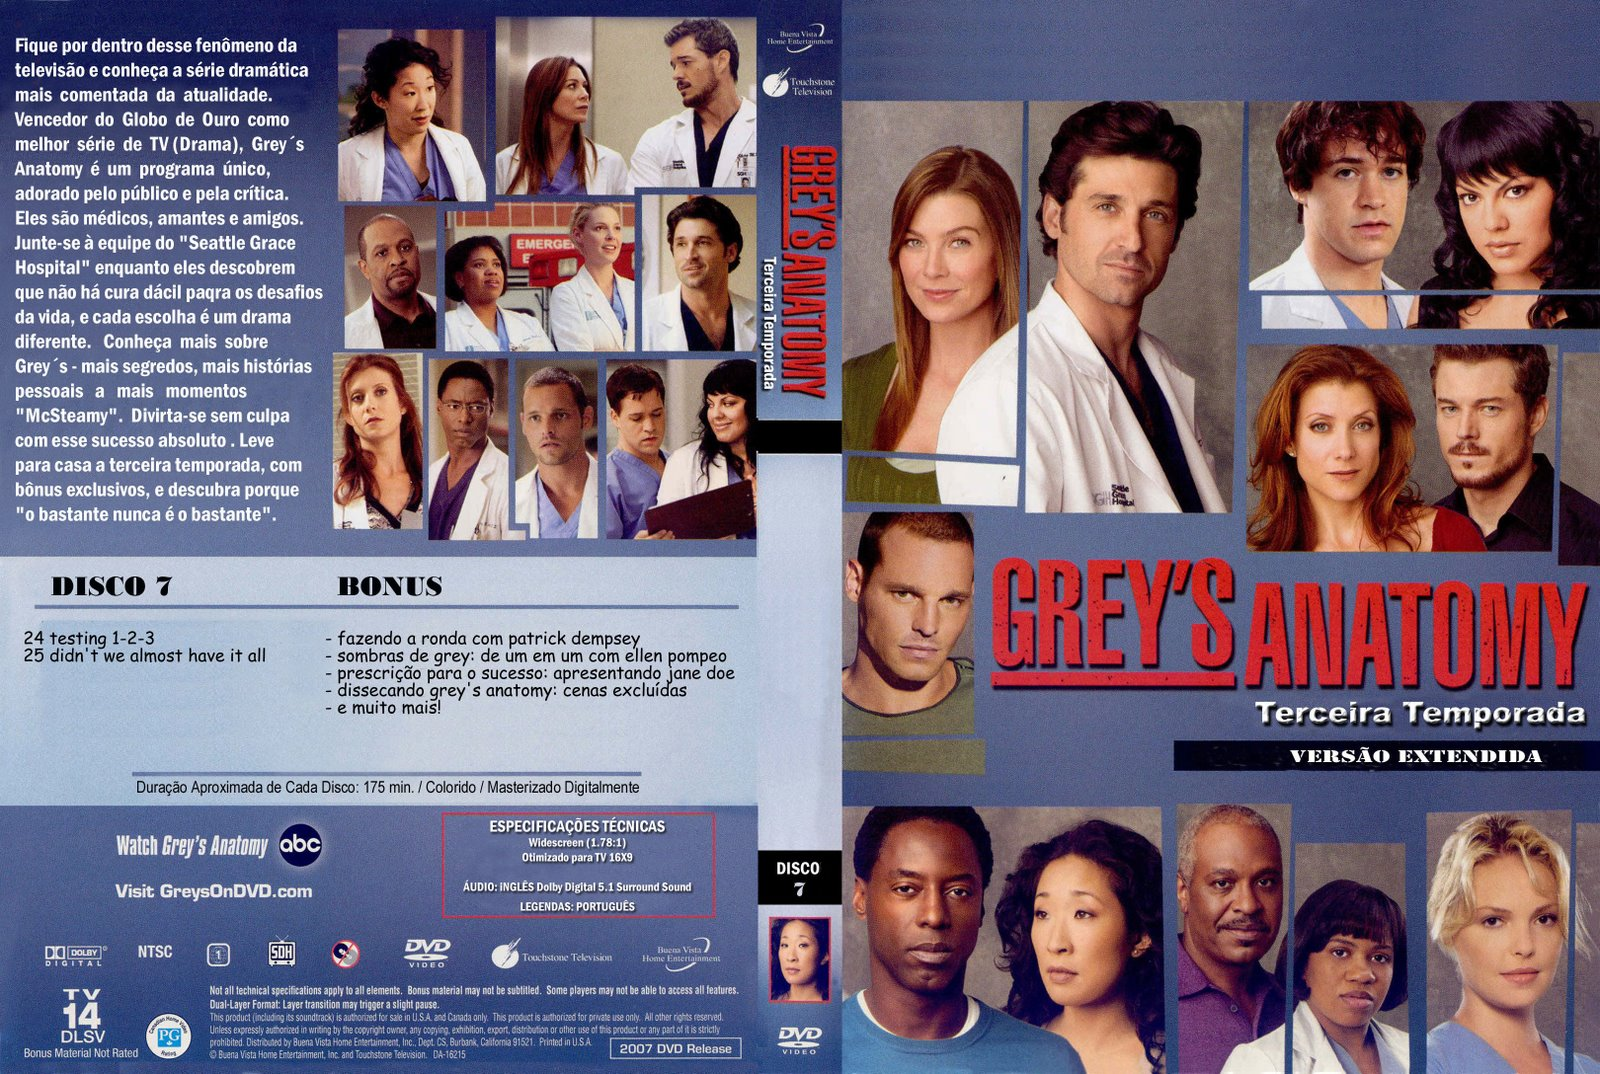 Download Greys Anatomy Season 7 Episodes For Home Aside